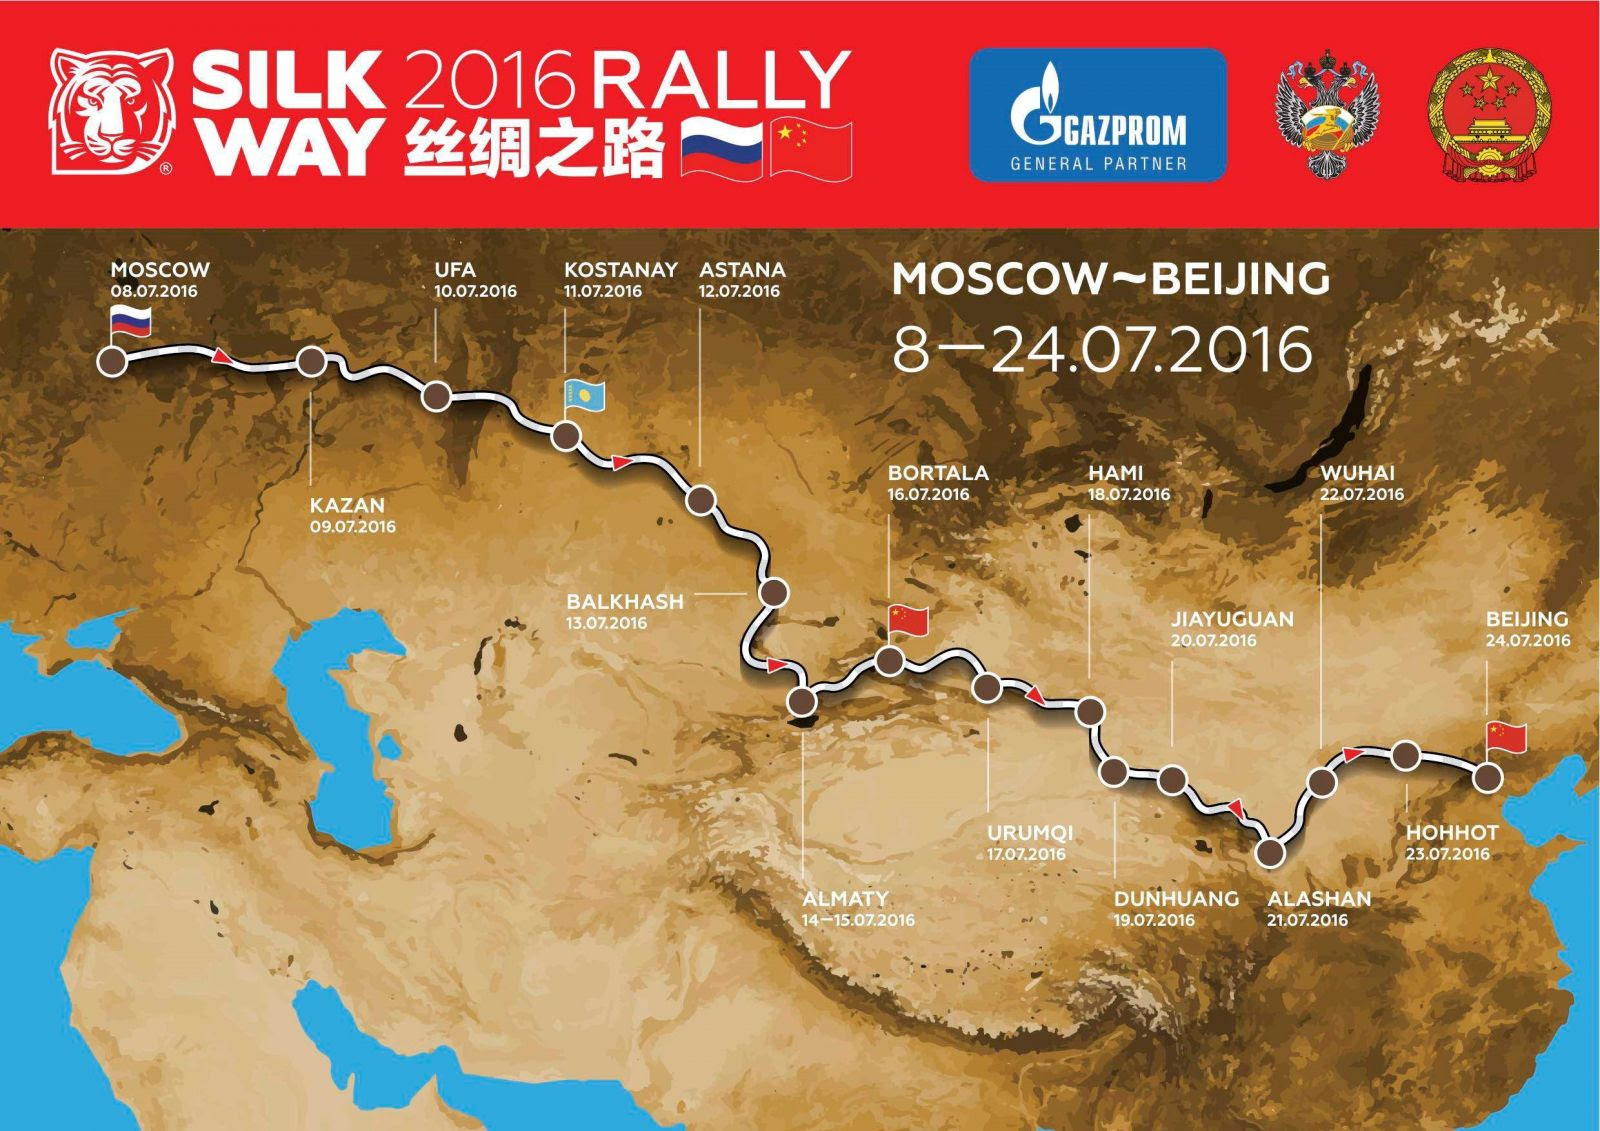 Silk Way Route Dakar Rally 2016